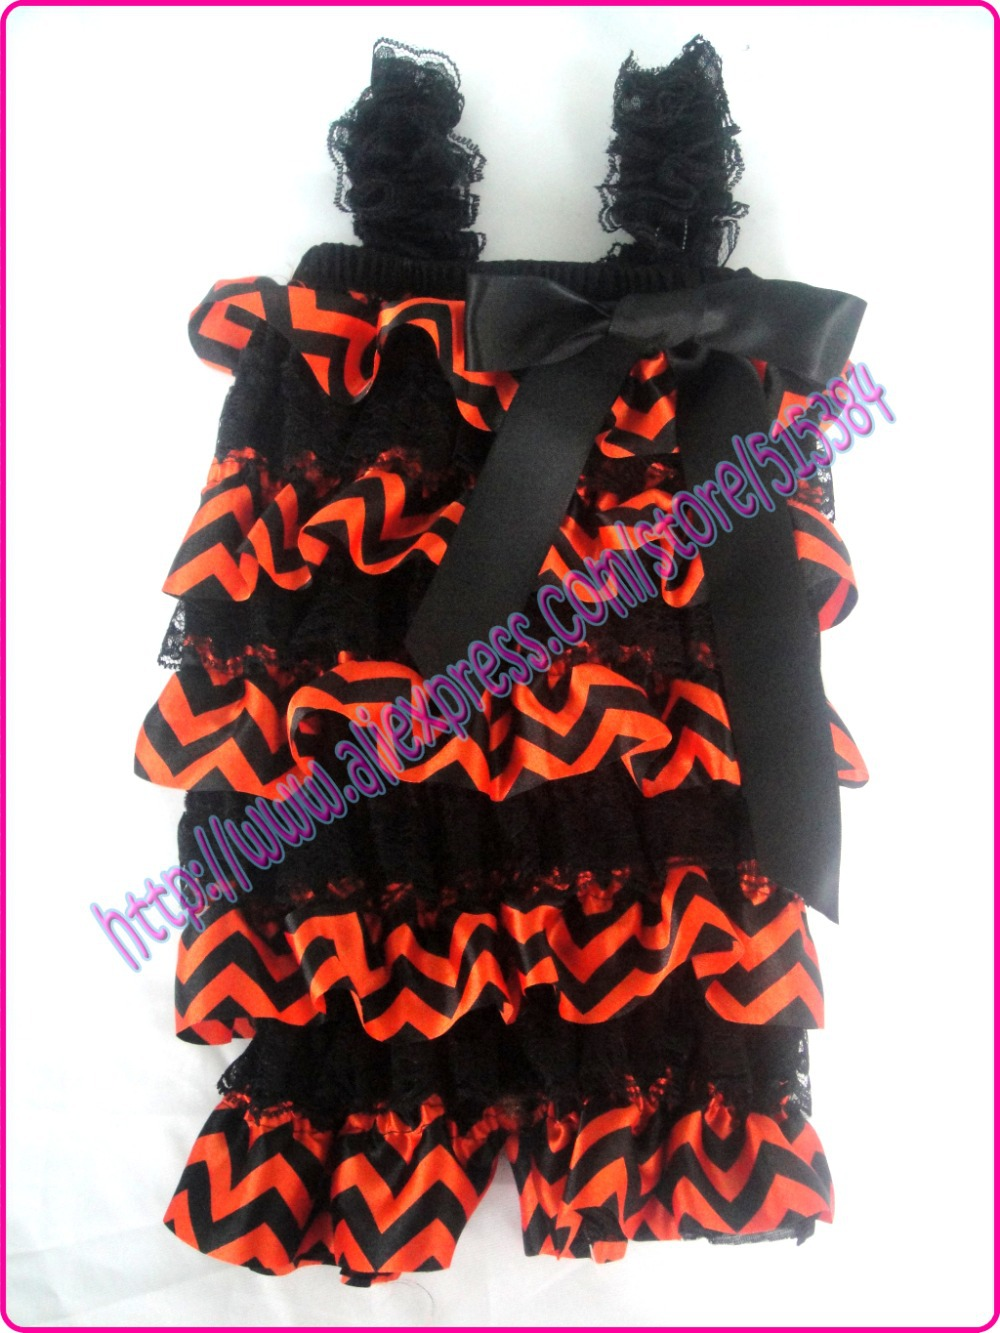 orange black chevron holloween petti rompers baby girls posh lace satin romper Birthday Outfit Romper12pcs/lot free shipping(China (Mainland))